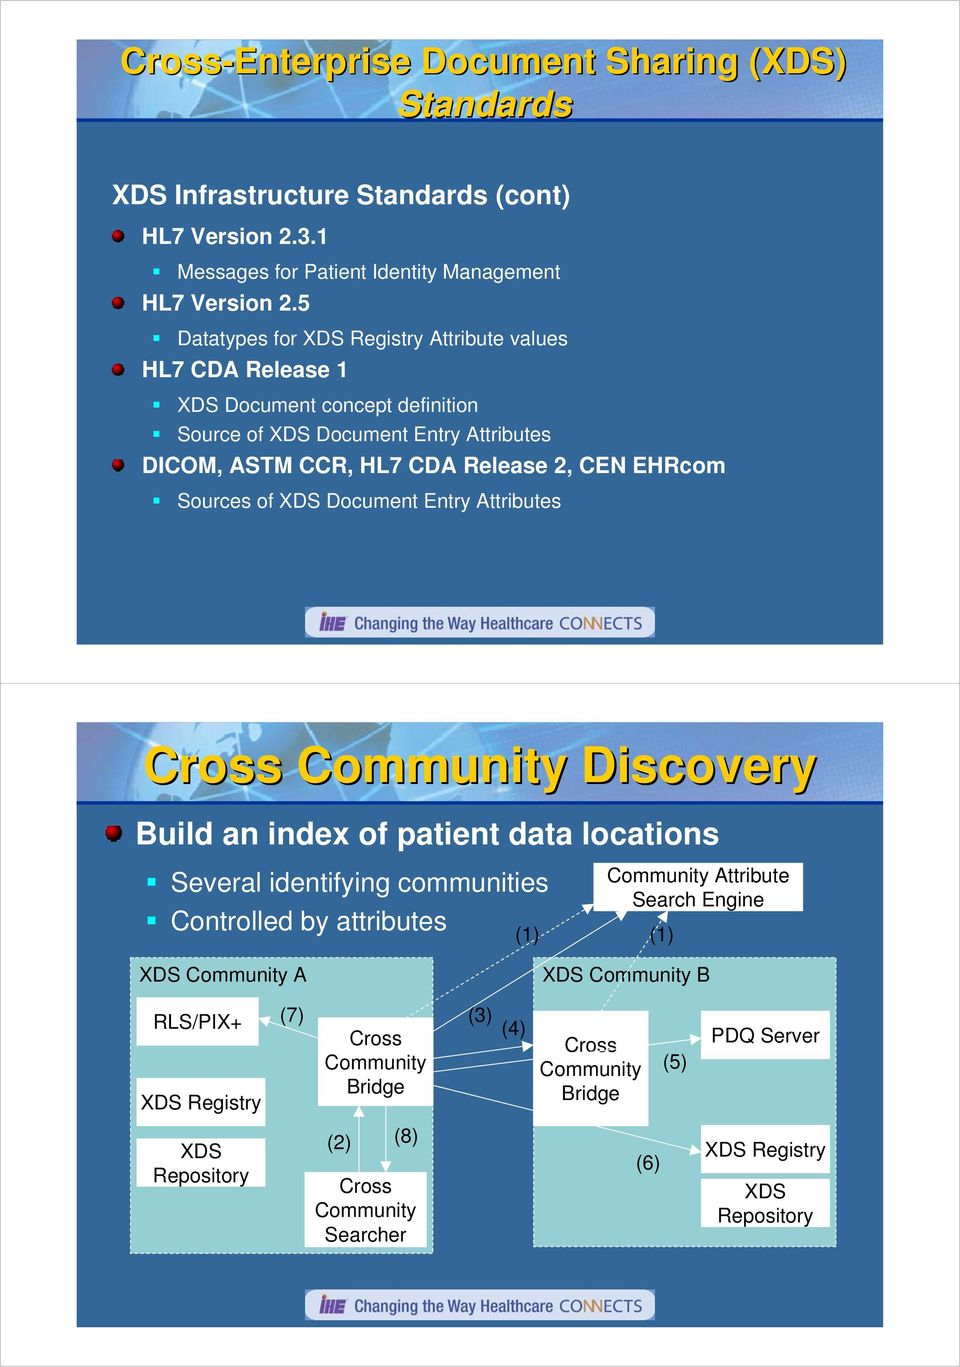 Attributes Cross Community Discovery Build an index of patient data locations Several identifying communities Controlled by attributes (1) Community Attribute Search Engine (1)